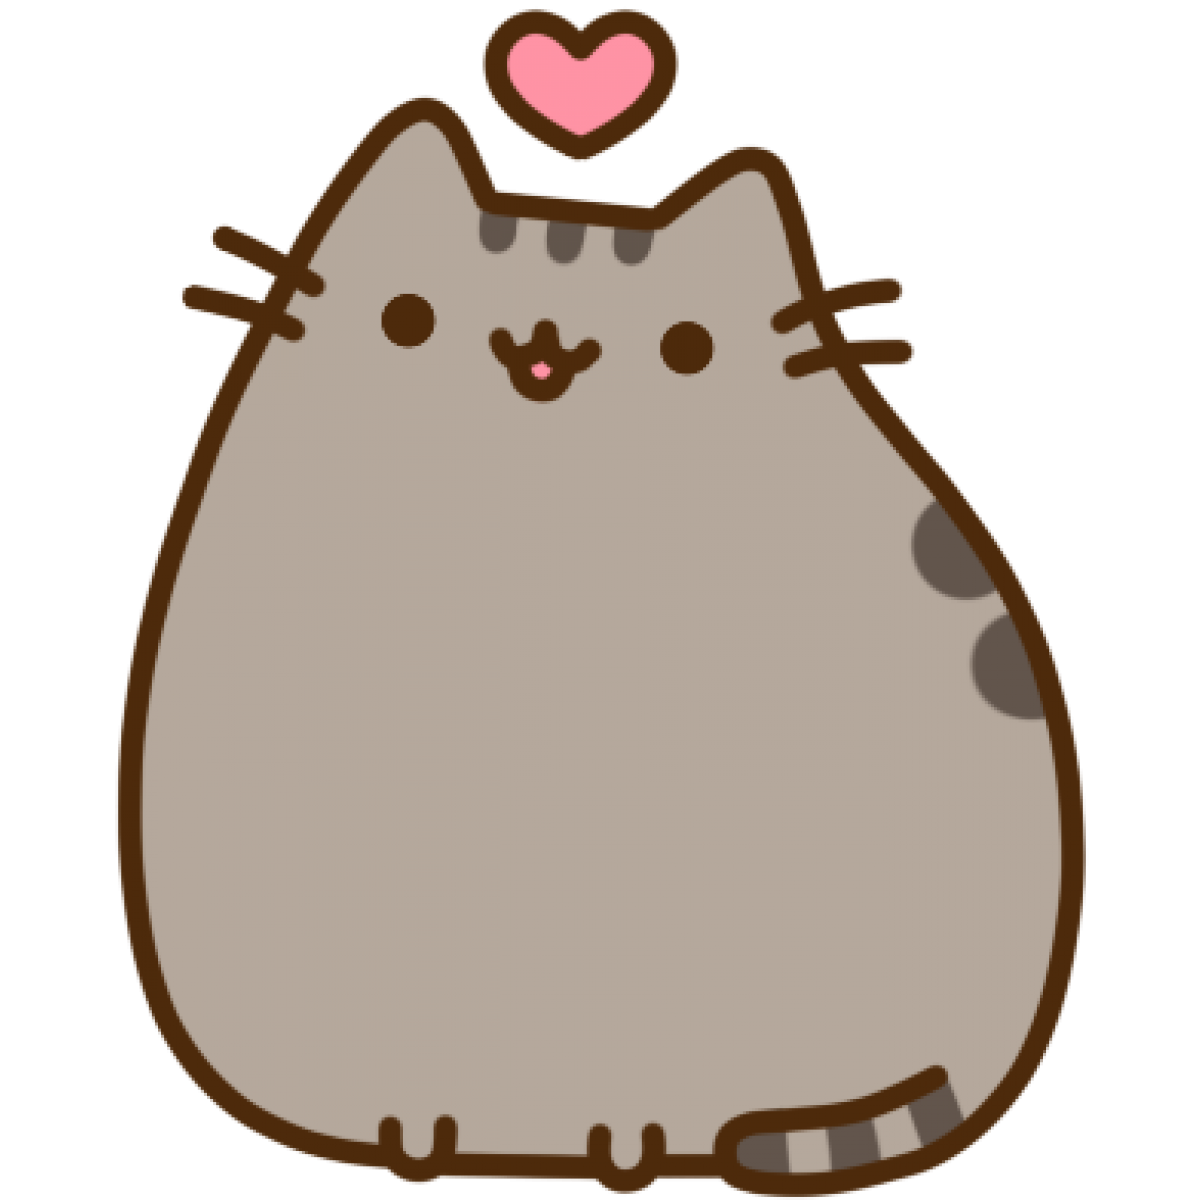 Pusheen heart png. Love by yuyuy thingiverse